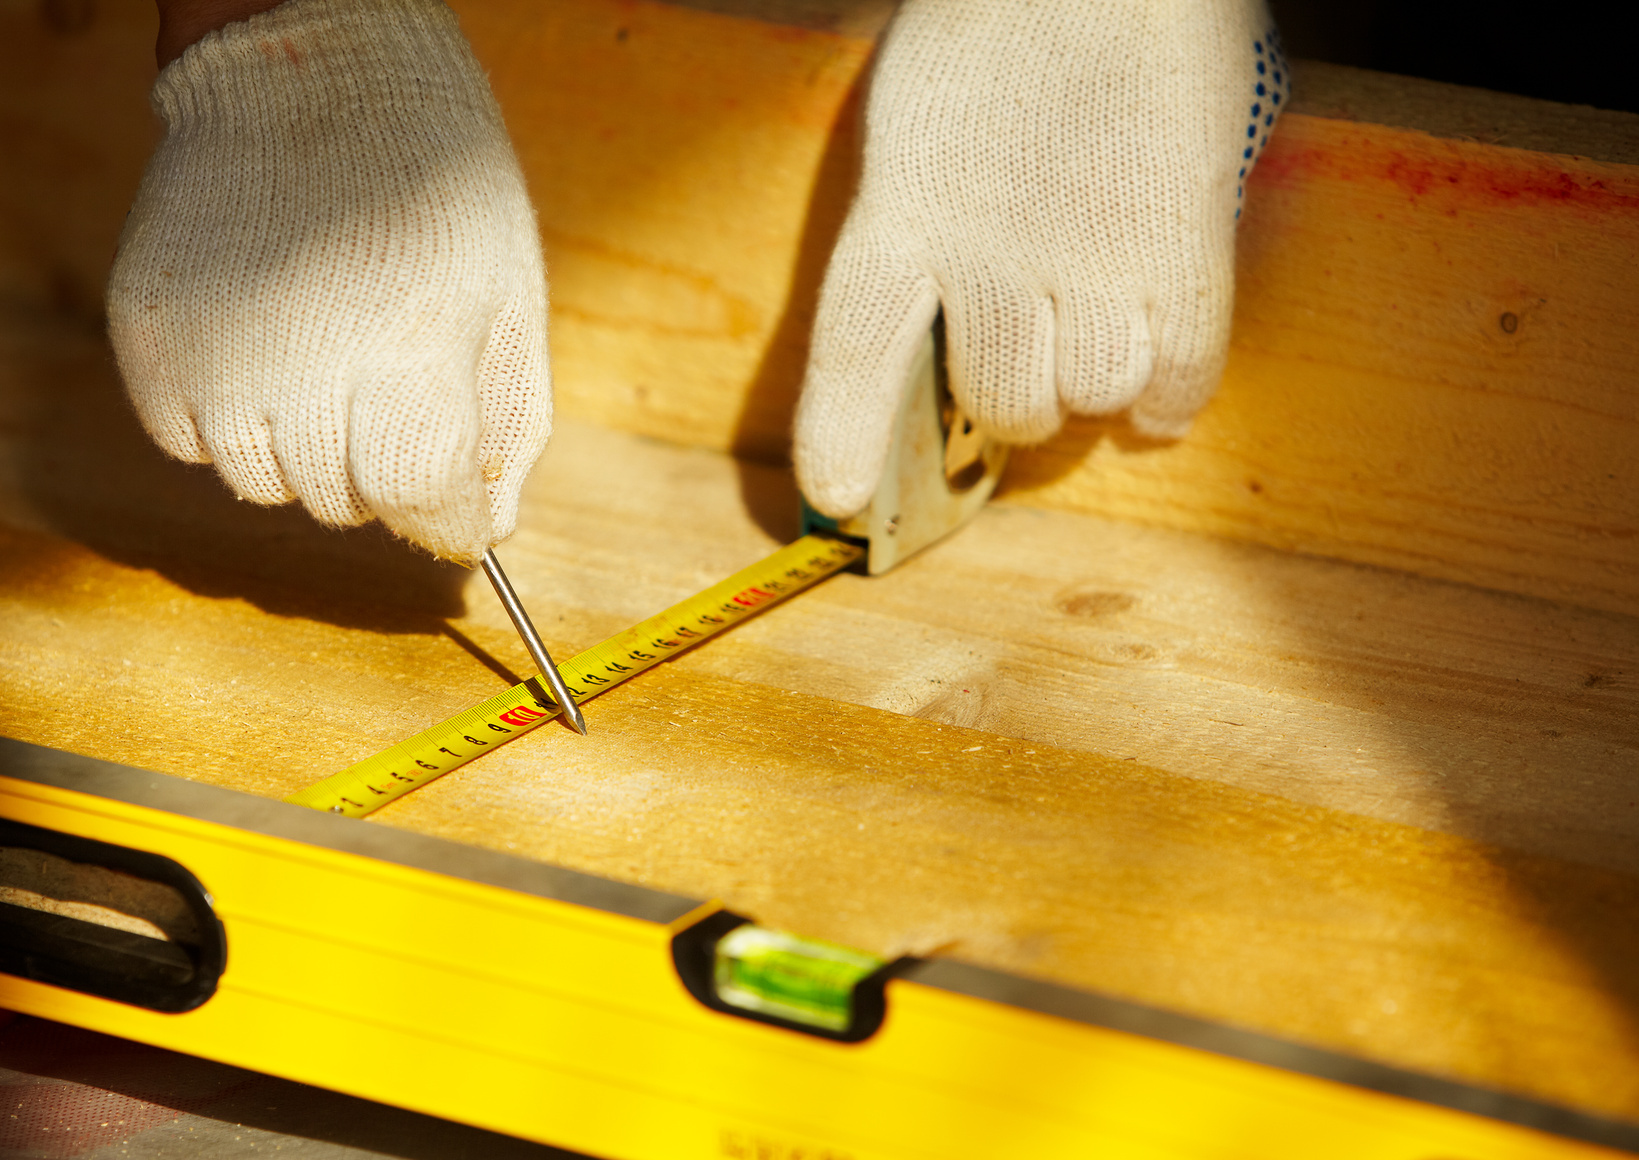 Hardwood flooring can be both beautiful and expensive, so protecting it is a priority.